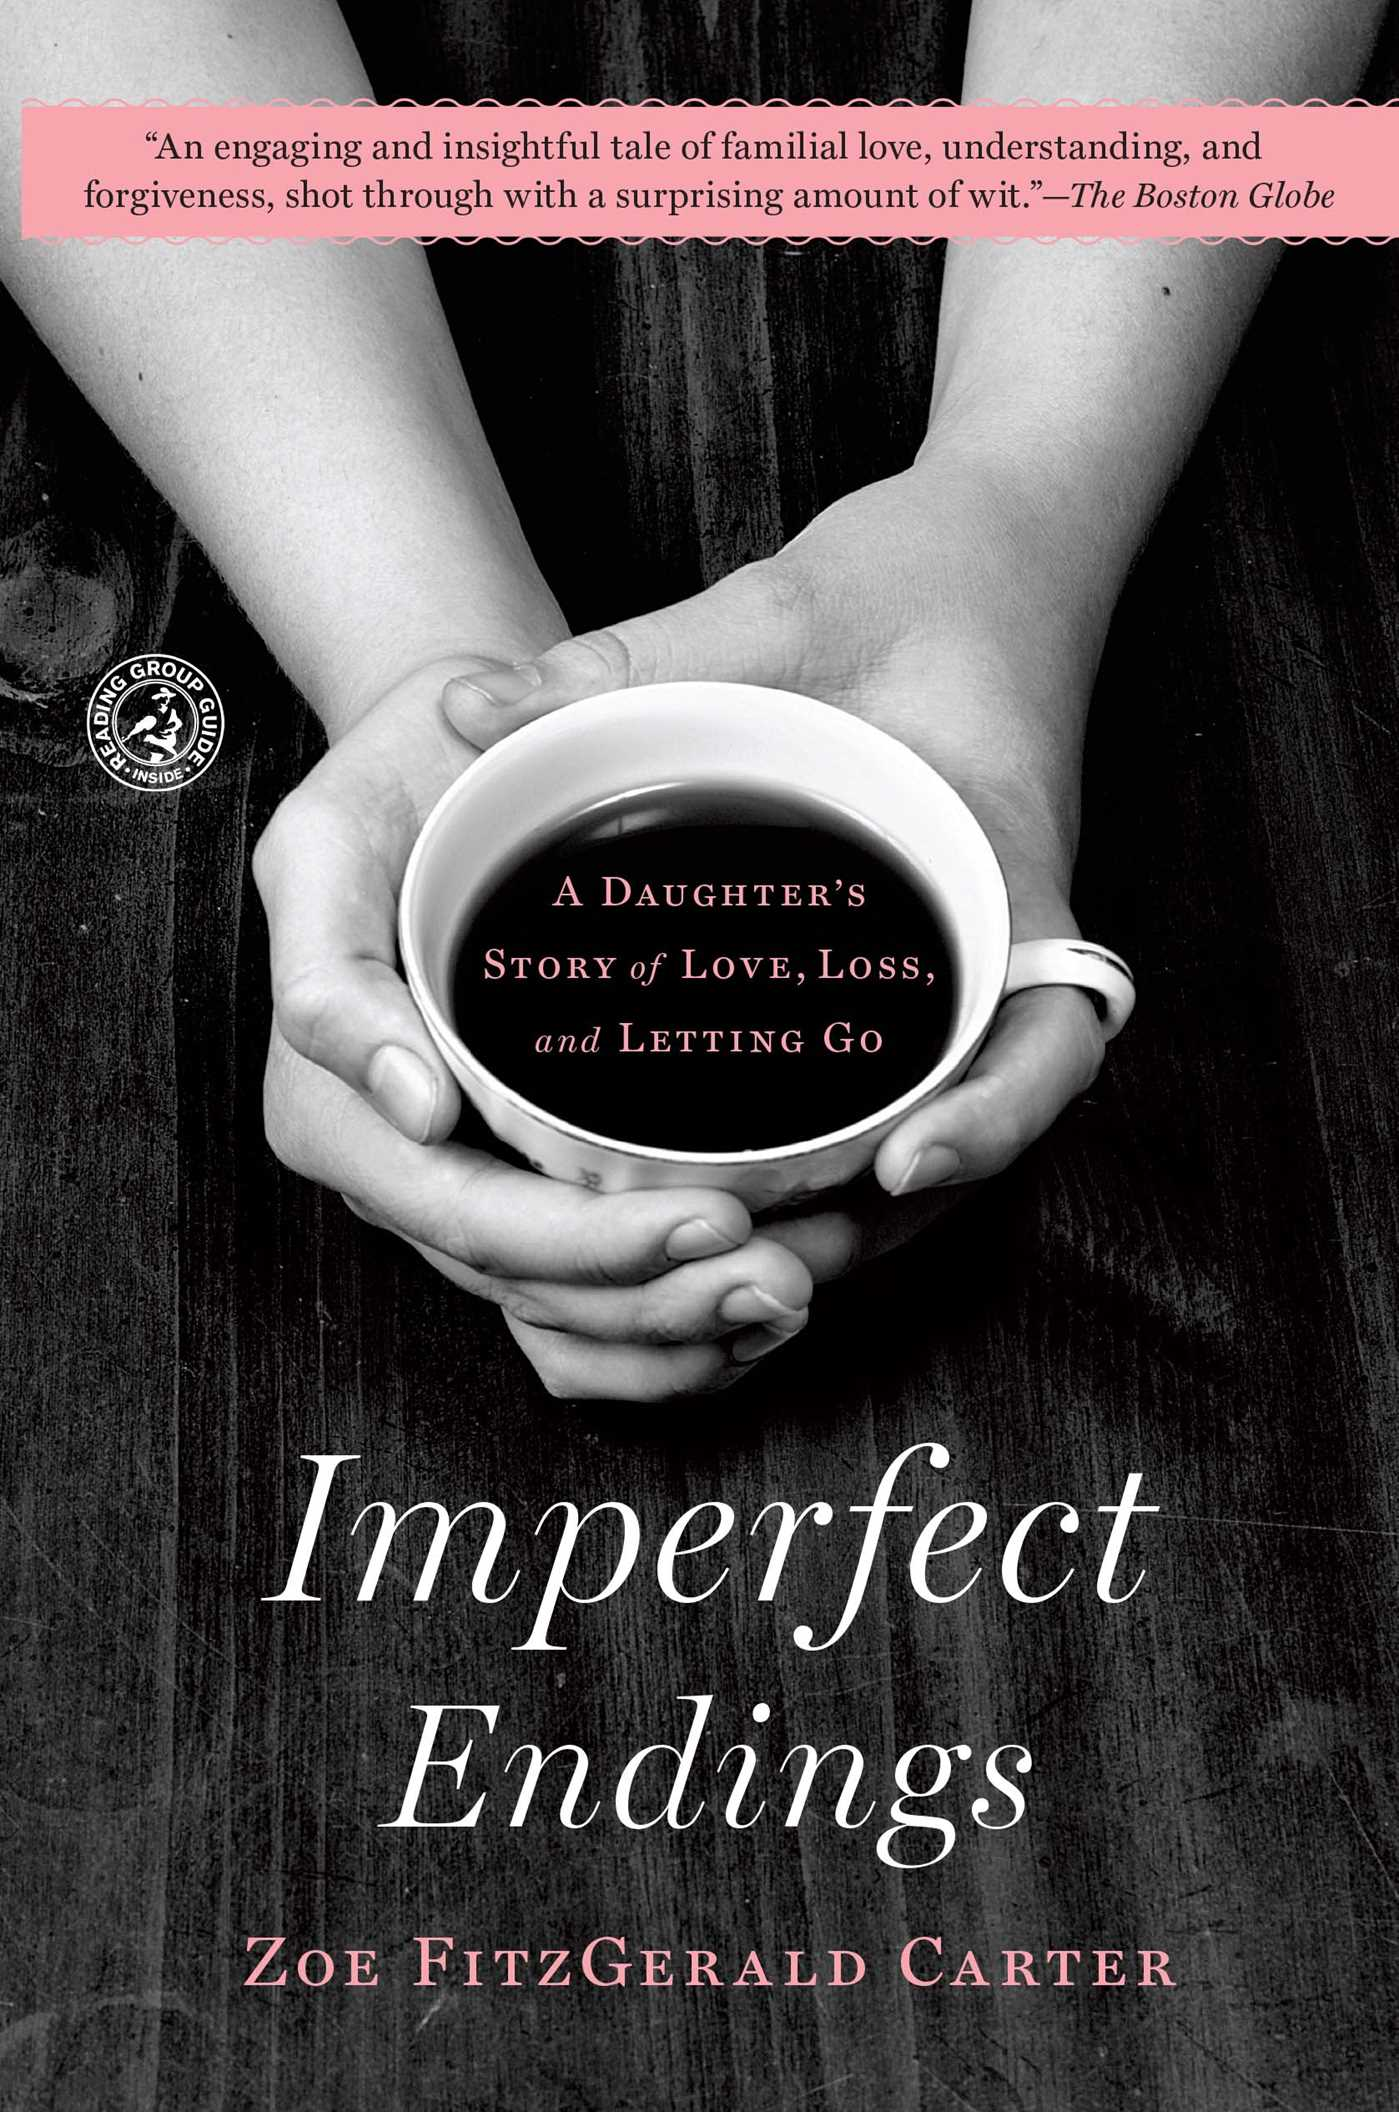 Imperfect-endings-9781439148310_hr